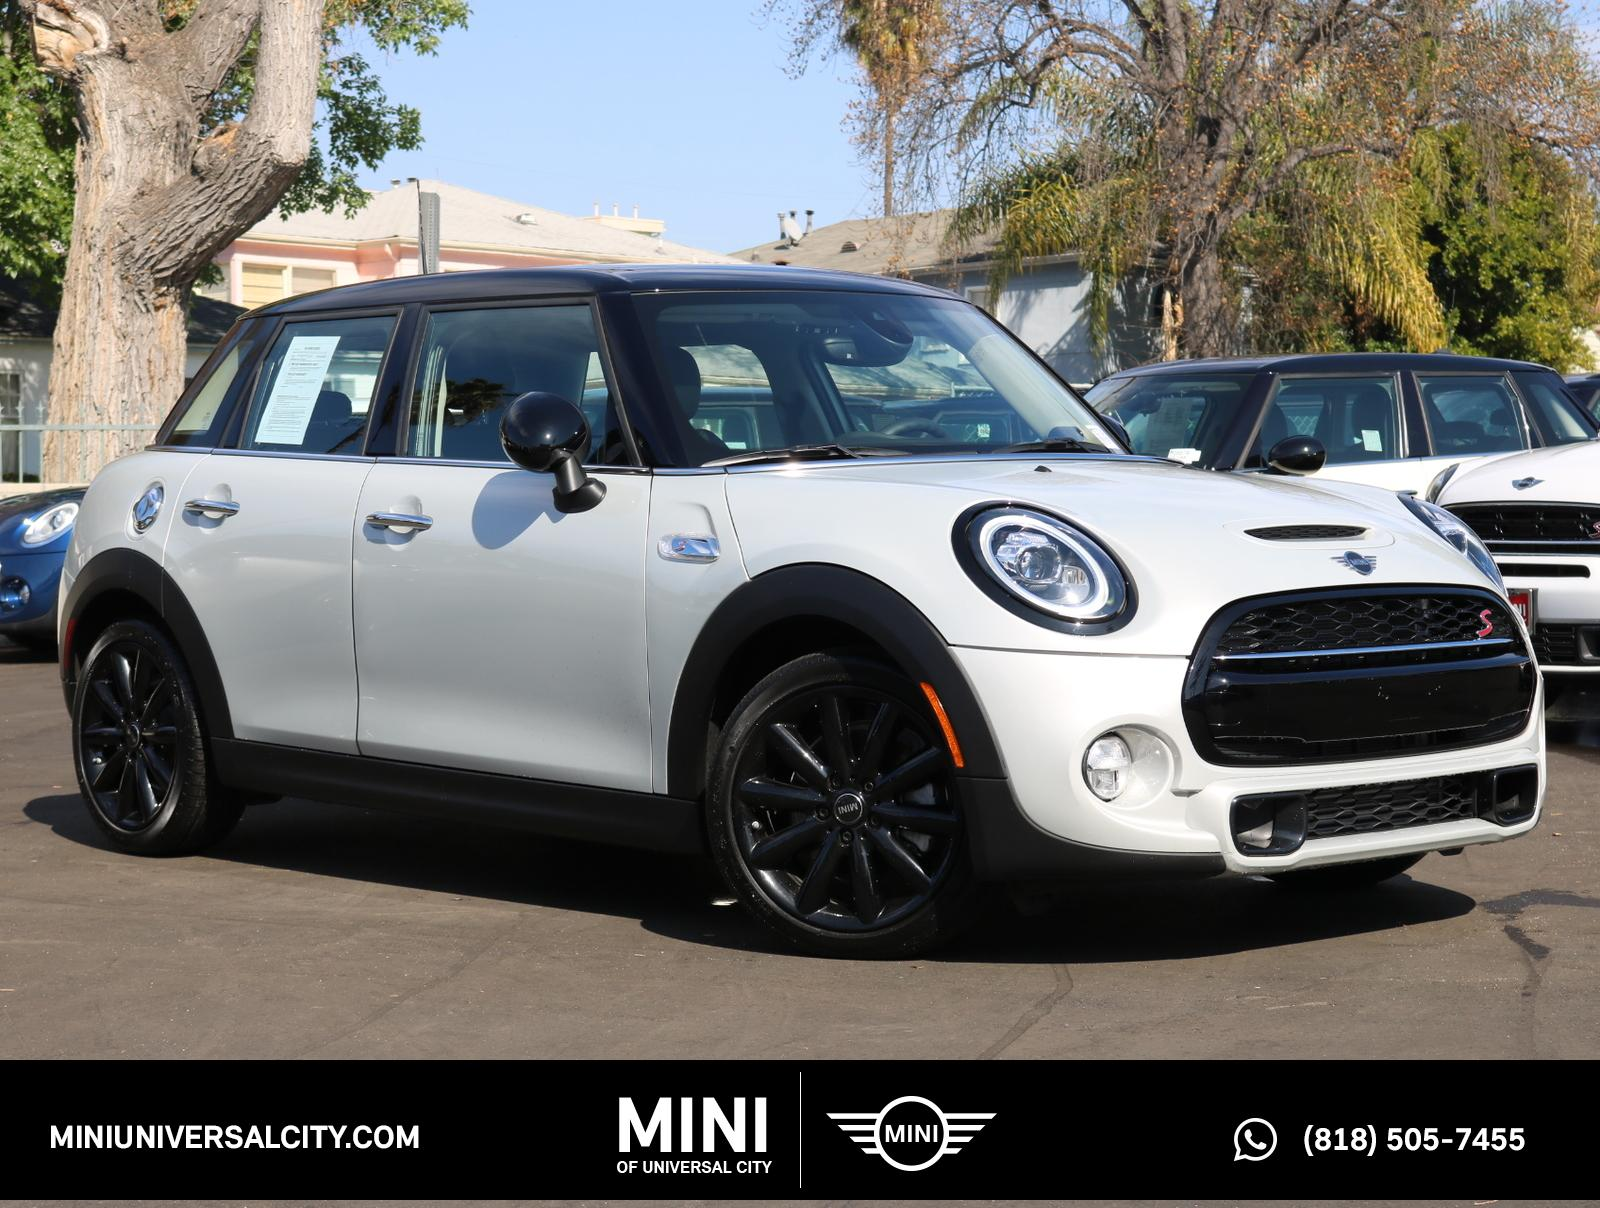 Pre-Owned 2019 MINI Cooper S Hardtop 4 Door